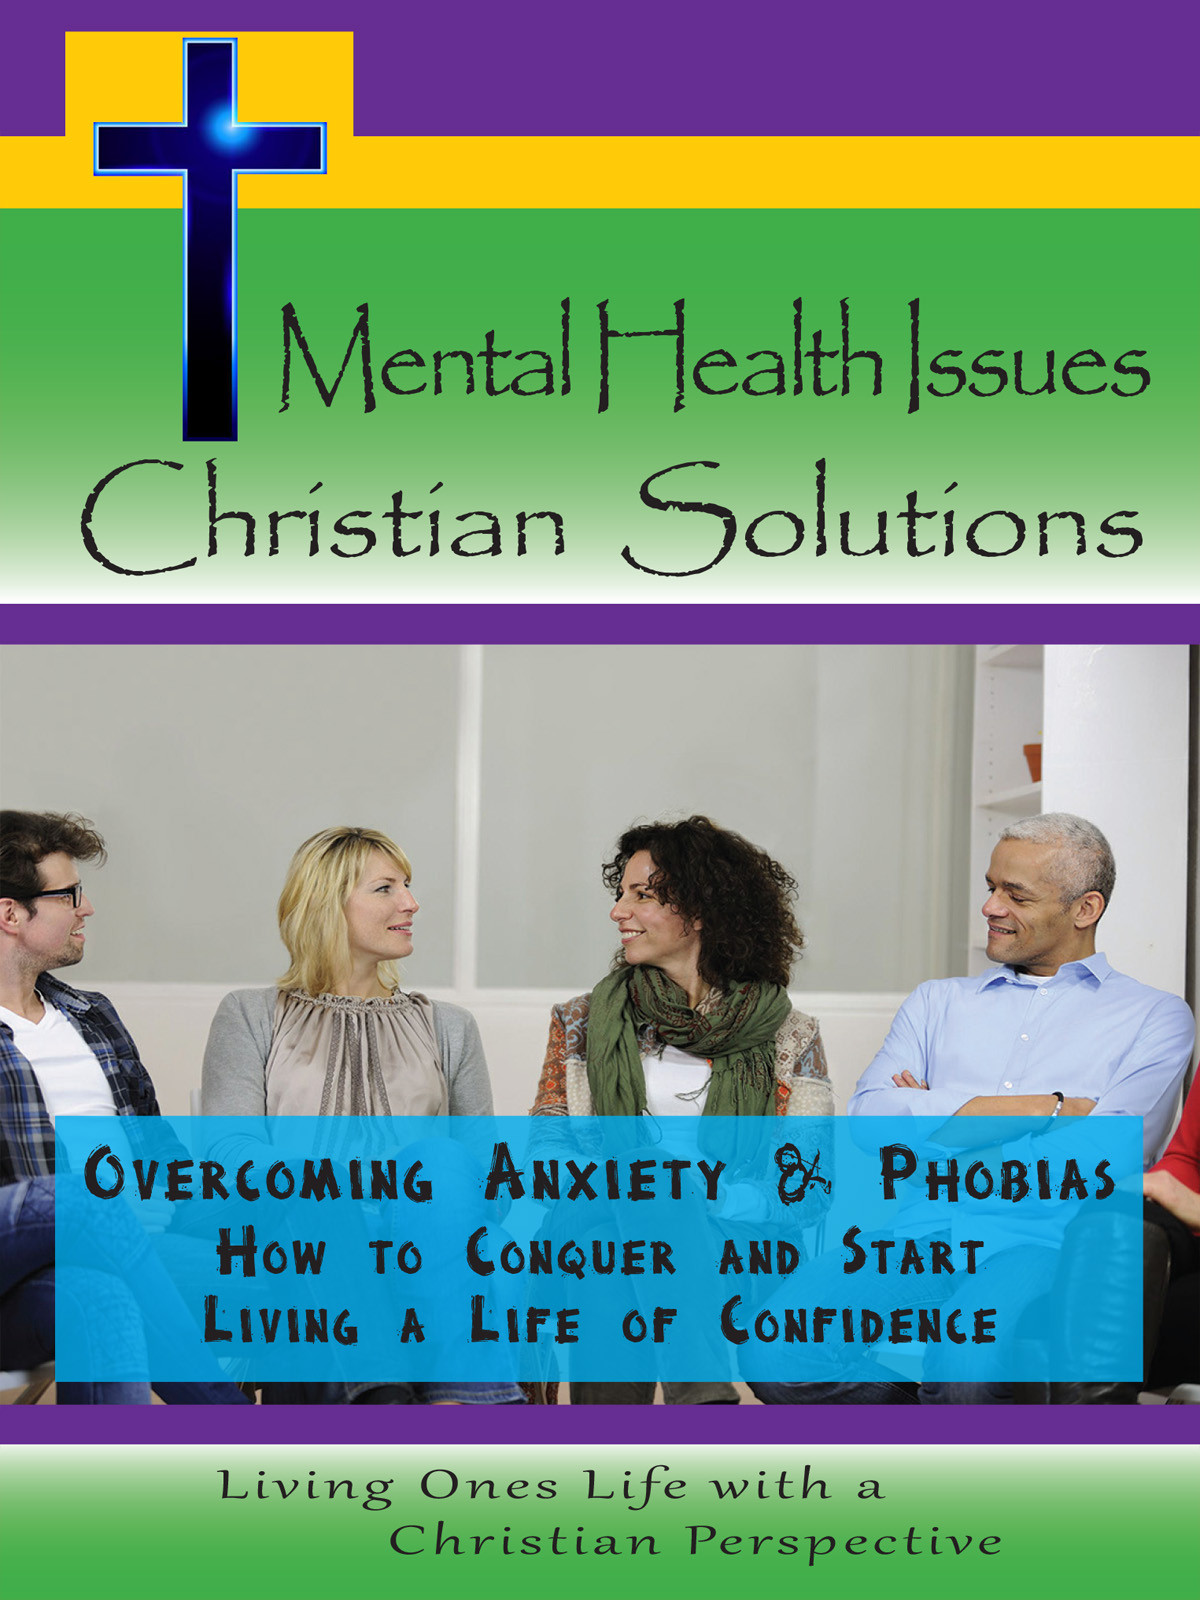 CH10010 - Overcoming Anxiety and Phobias How to Conquer and Start Living a Life of Confidence